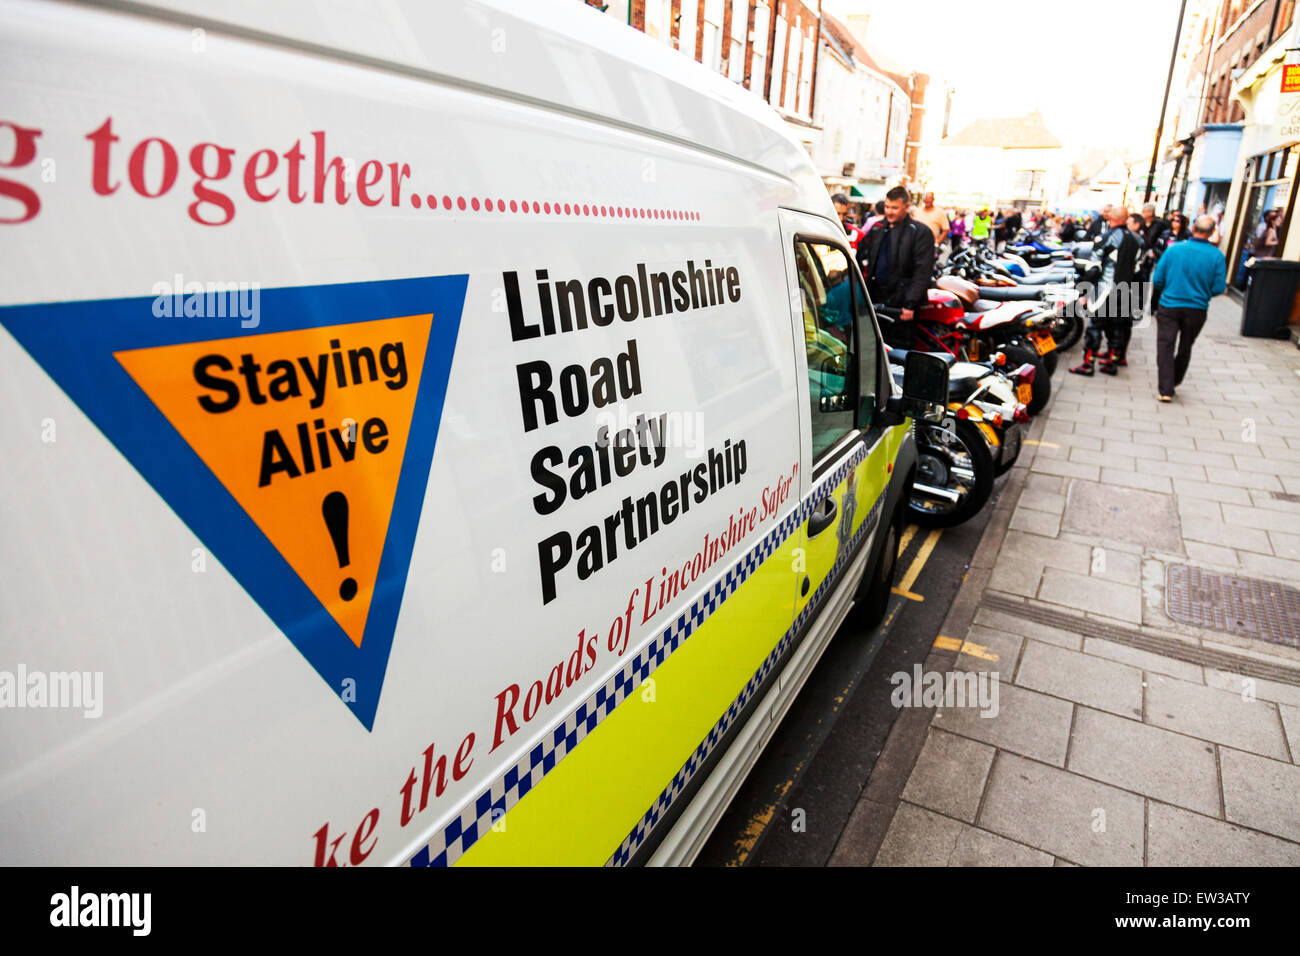 Lincolnshire road safety partnership sign on van staying alive on roads streets police vehicle car - Stock Image